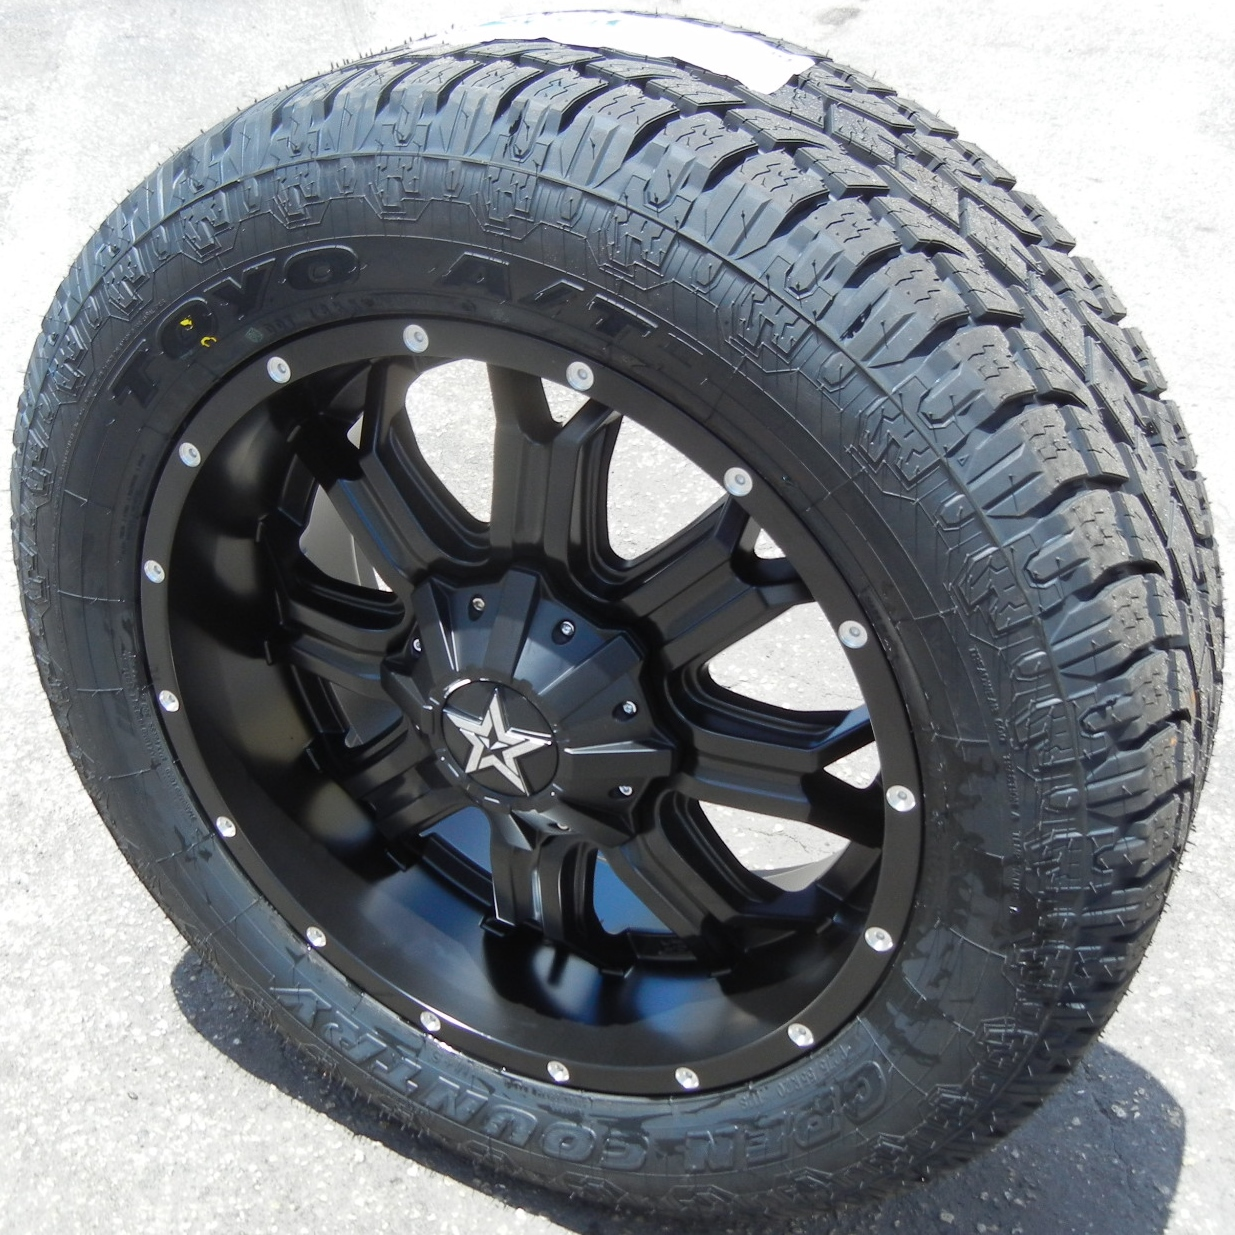 Find 20 Black Tis 535 Wheels Rims Toyo Opencountry At Ii Tires Ford Dodge Ram 1500 At2 Wheel